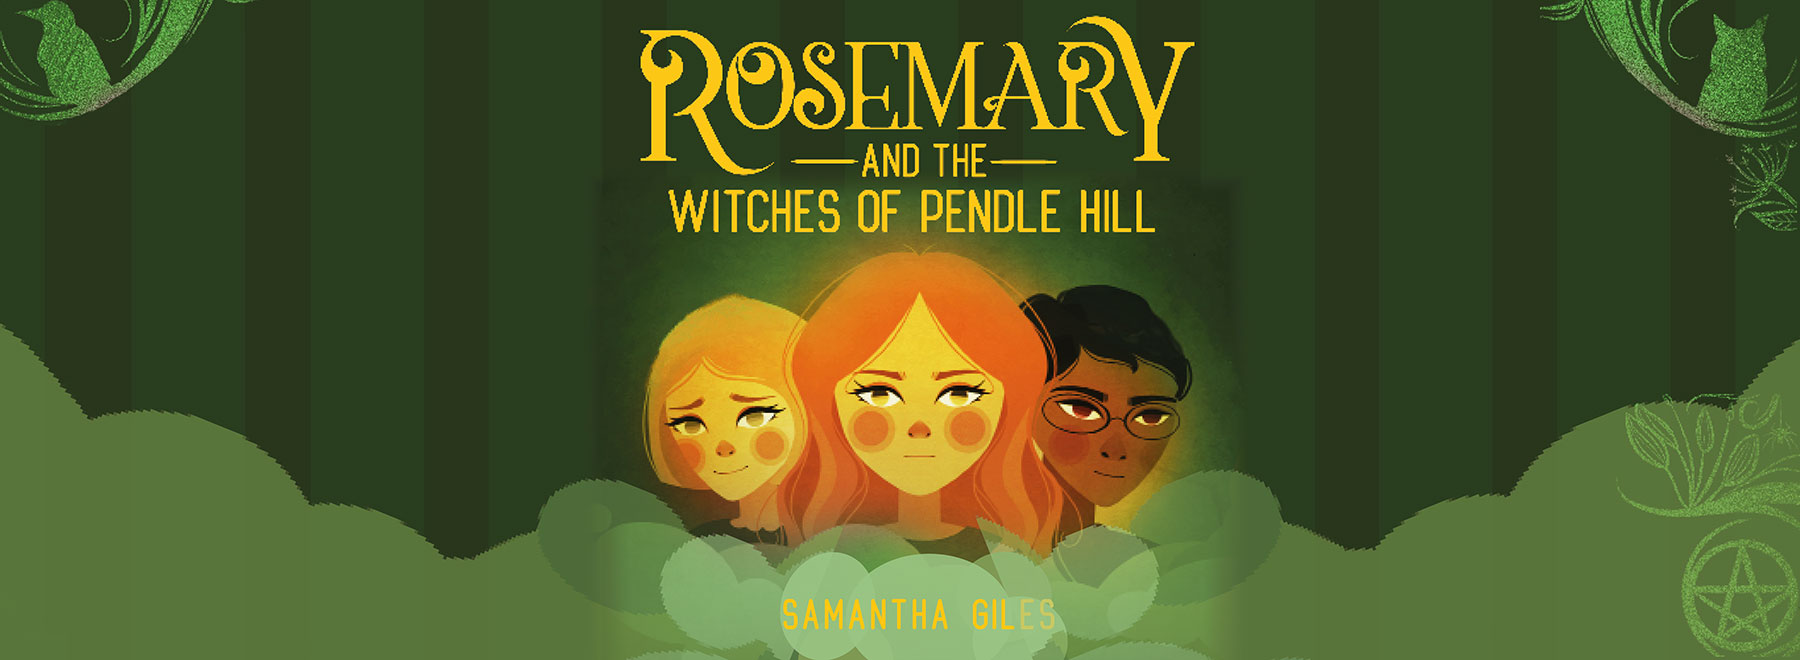 Rosemary and the Witches of Pendle illustration